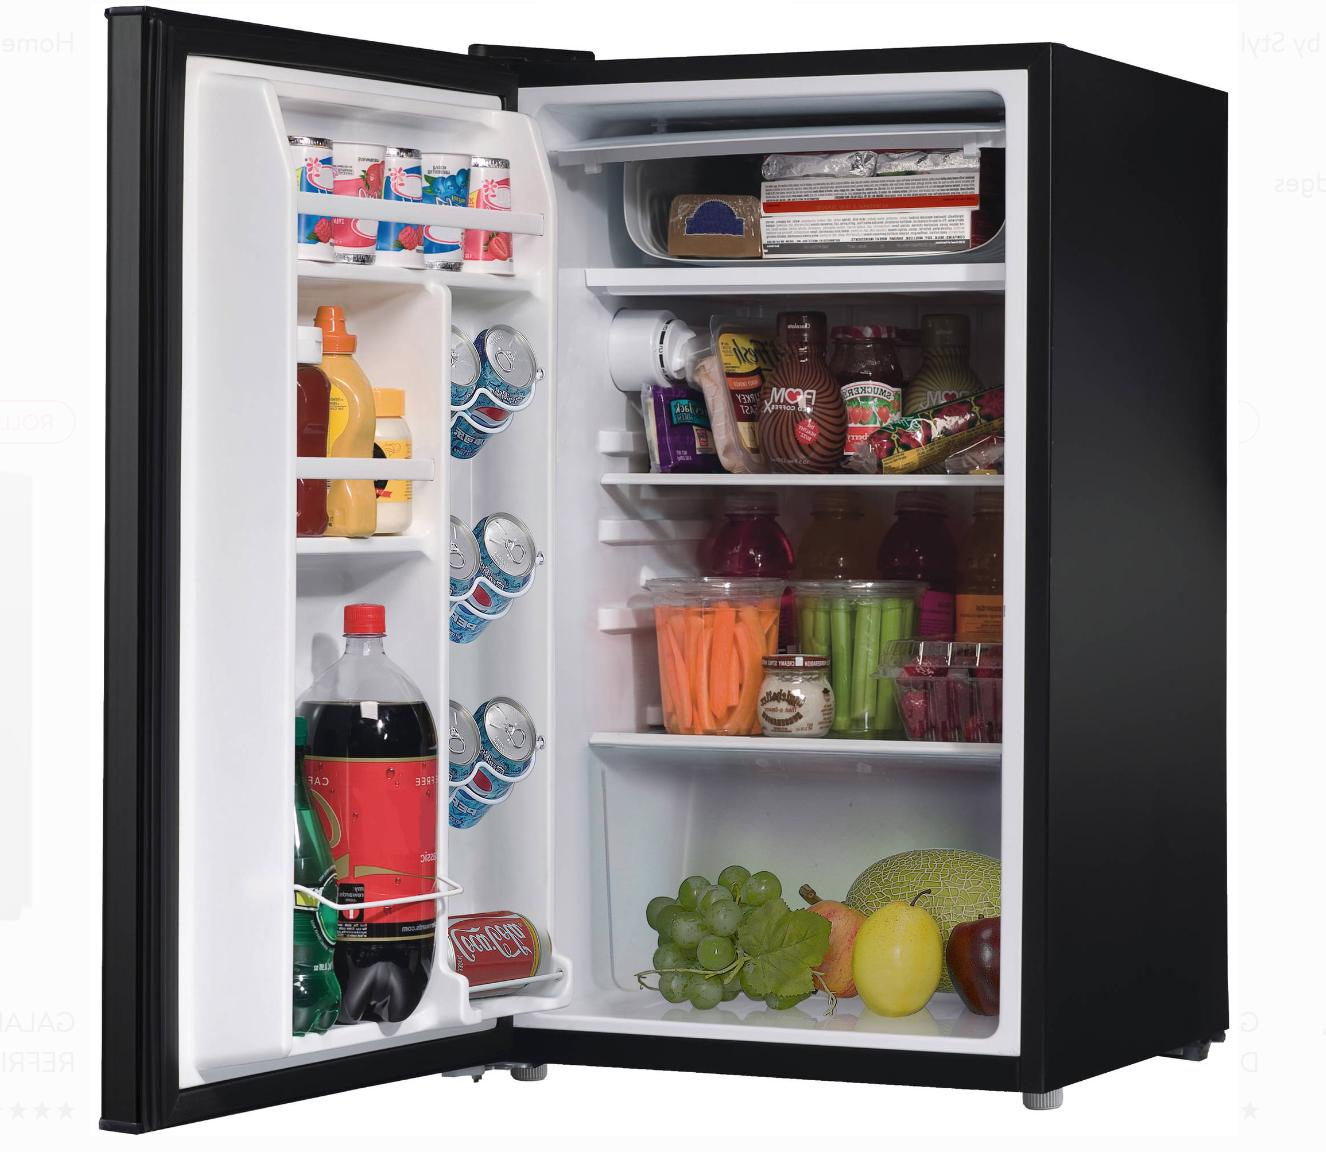 Mini With Freezer RV Basement Small Refrigerator for Office